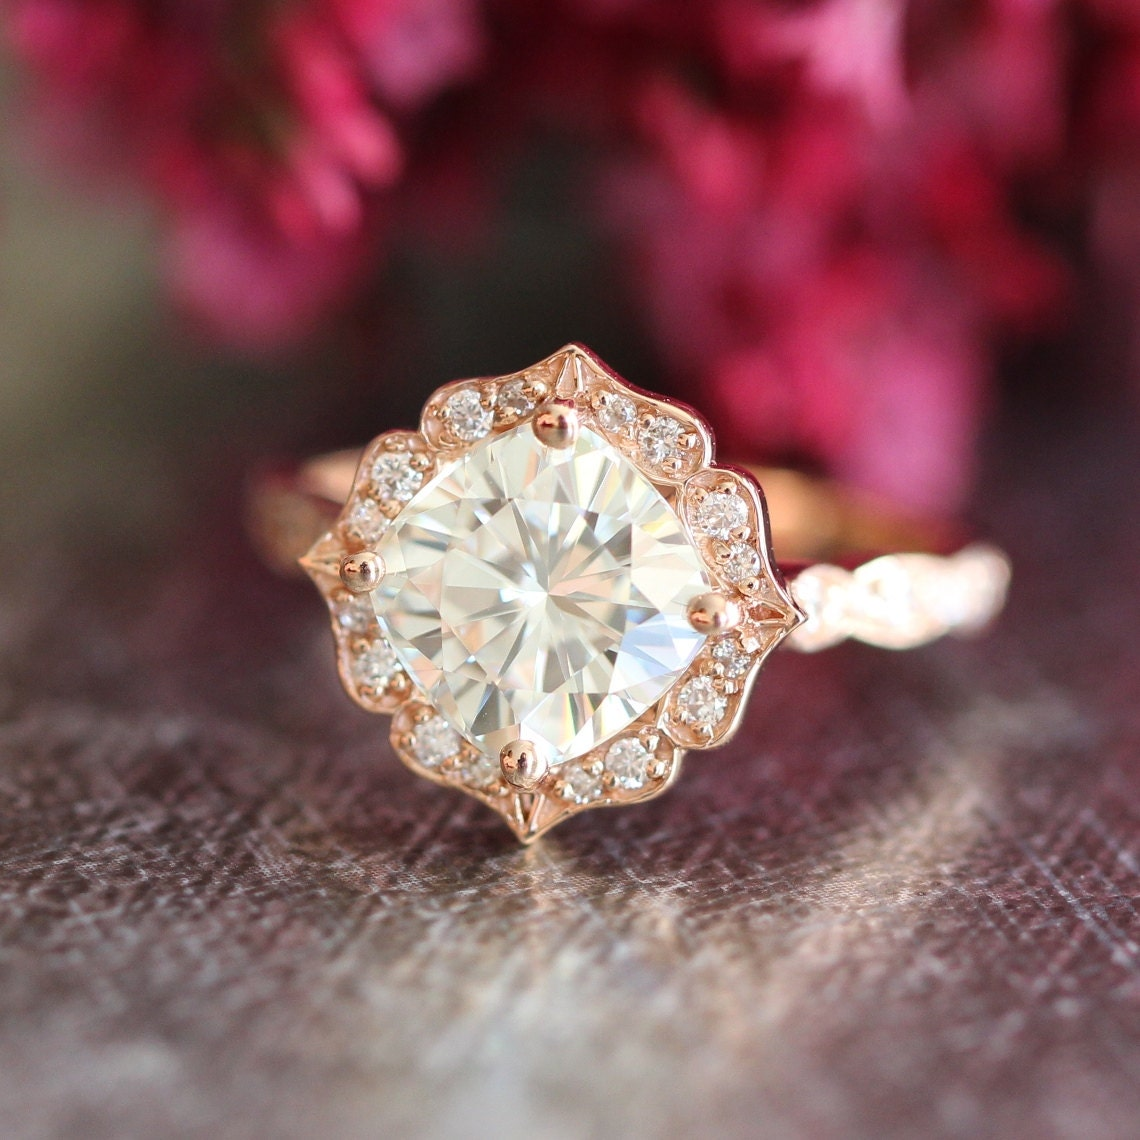 Engagement Rings With Moissanite: 14k Rose Gold Moissanite Engagement Ring Vintage Floral Ring